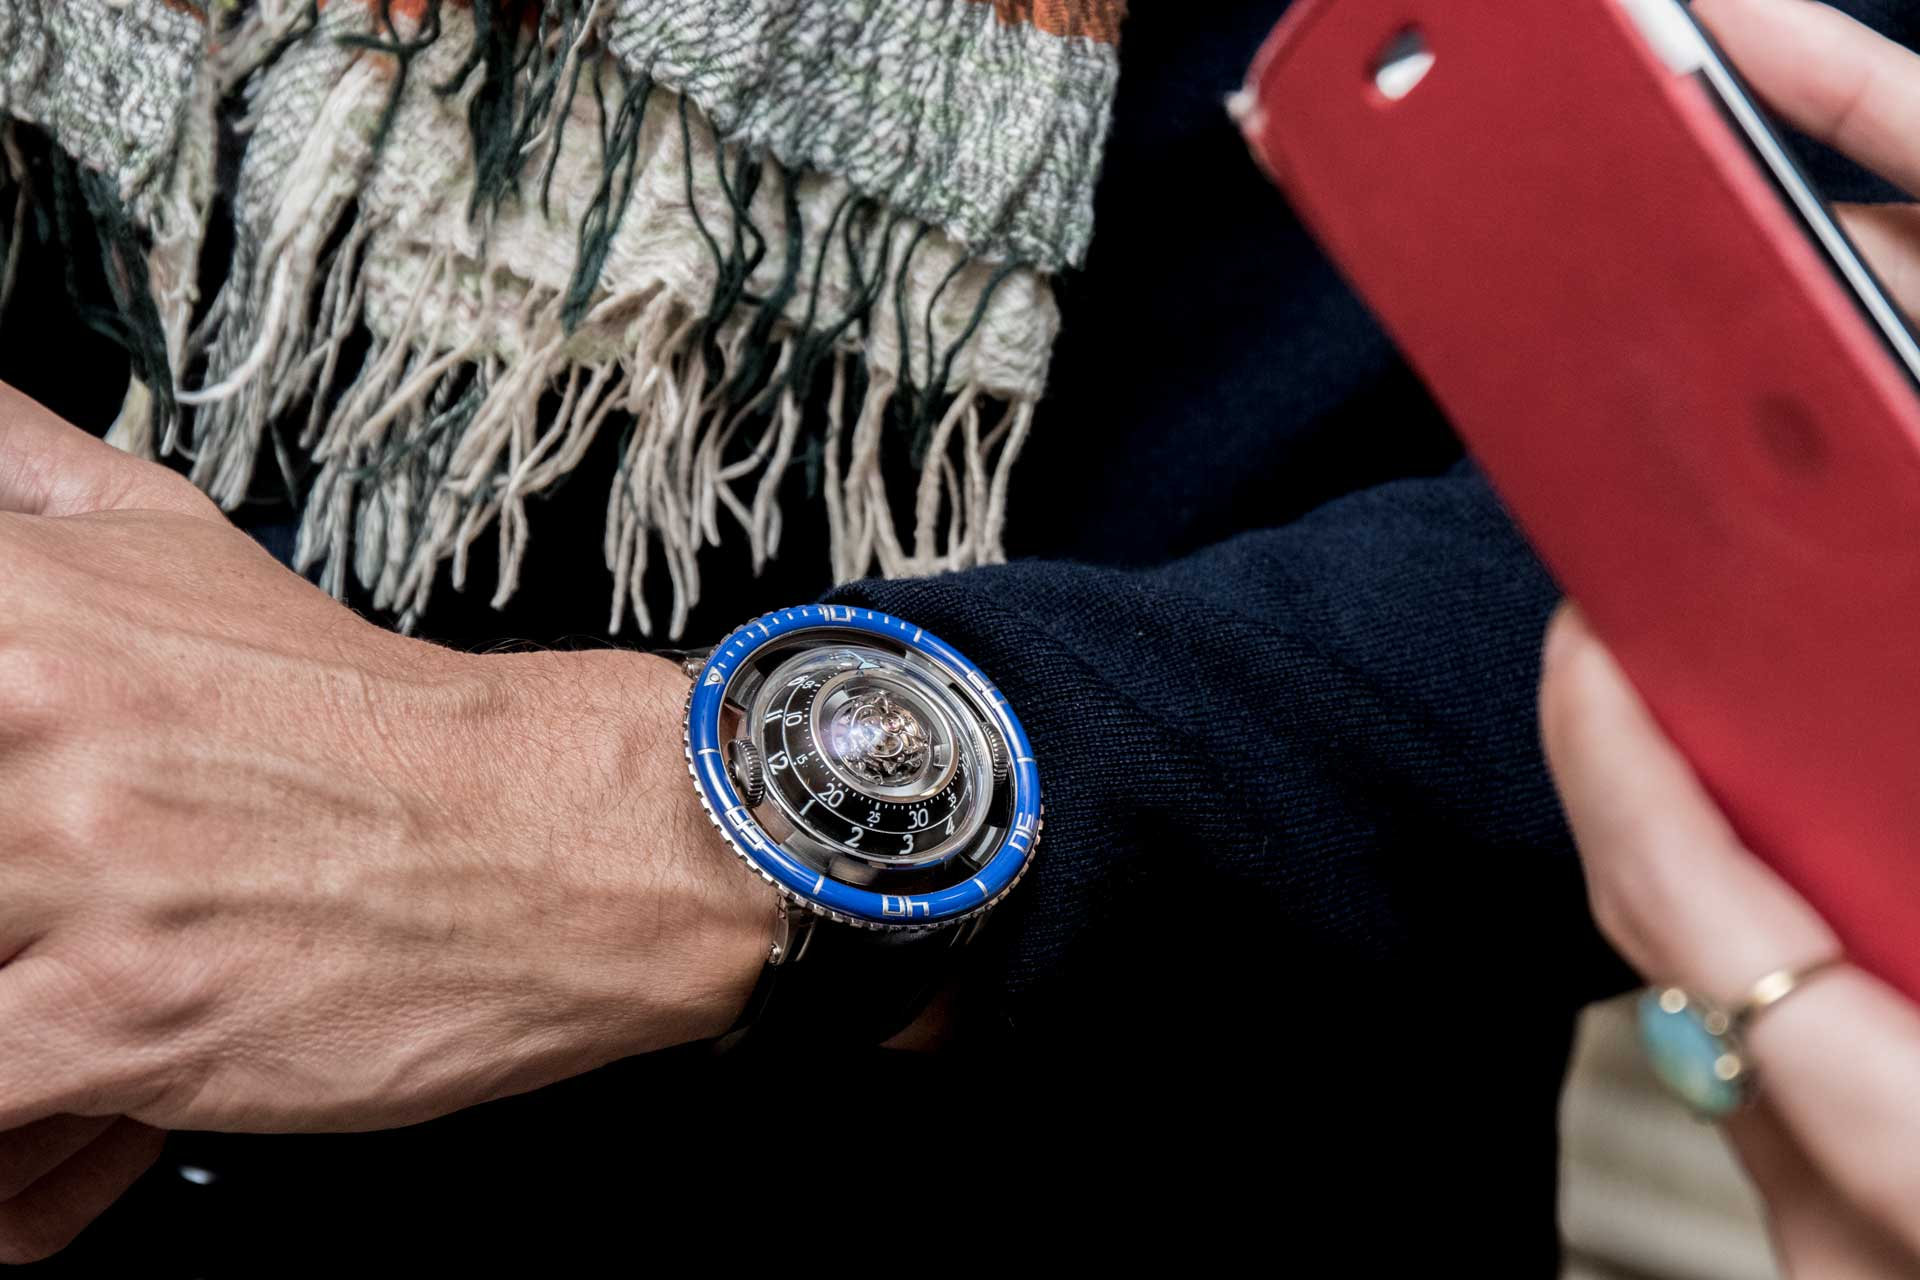 The HM7 Aquapod in titanium with a blue ceramic bezel (© Revolution)